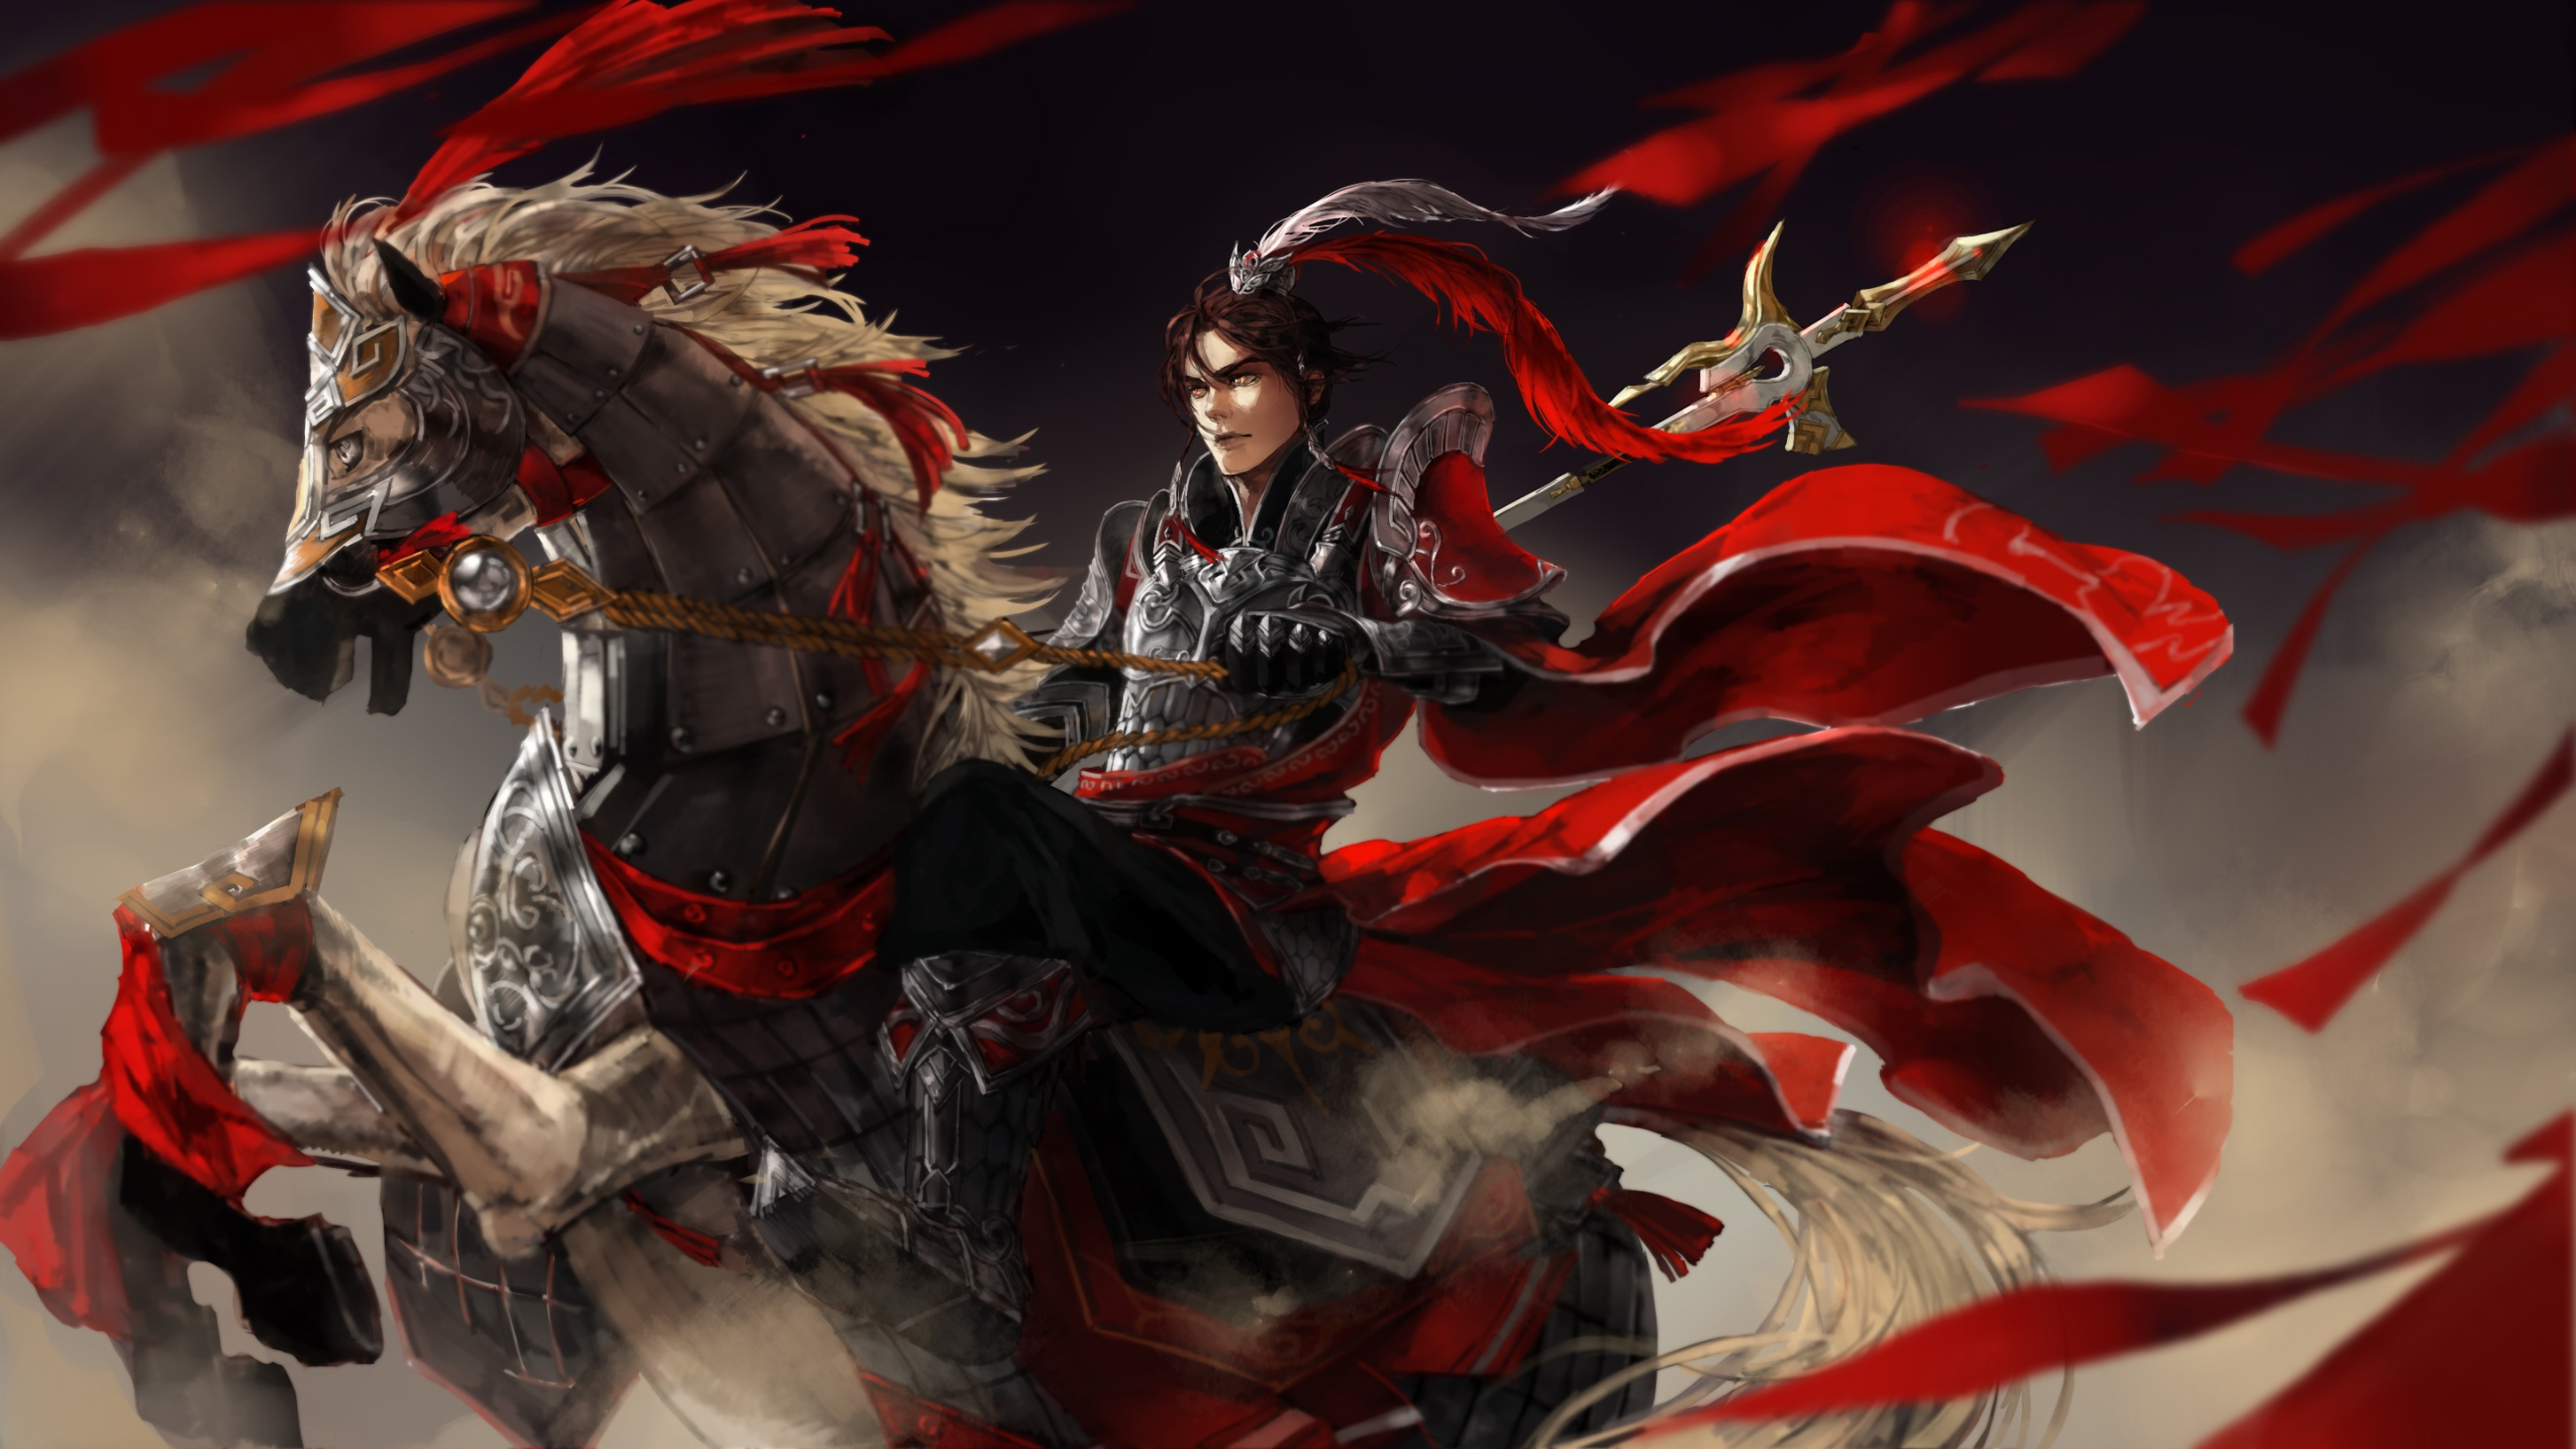 Girl With Spear Wallpaper Jian Wang 3 Ancient Warrior With A Red Cloak Feathered